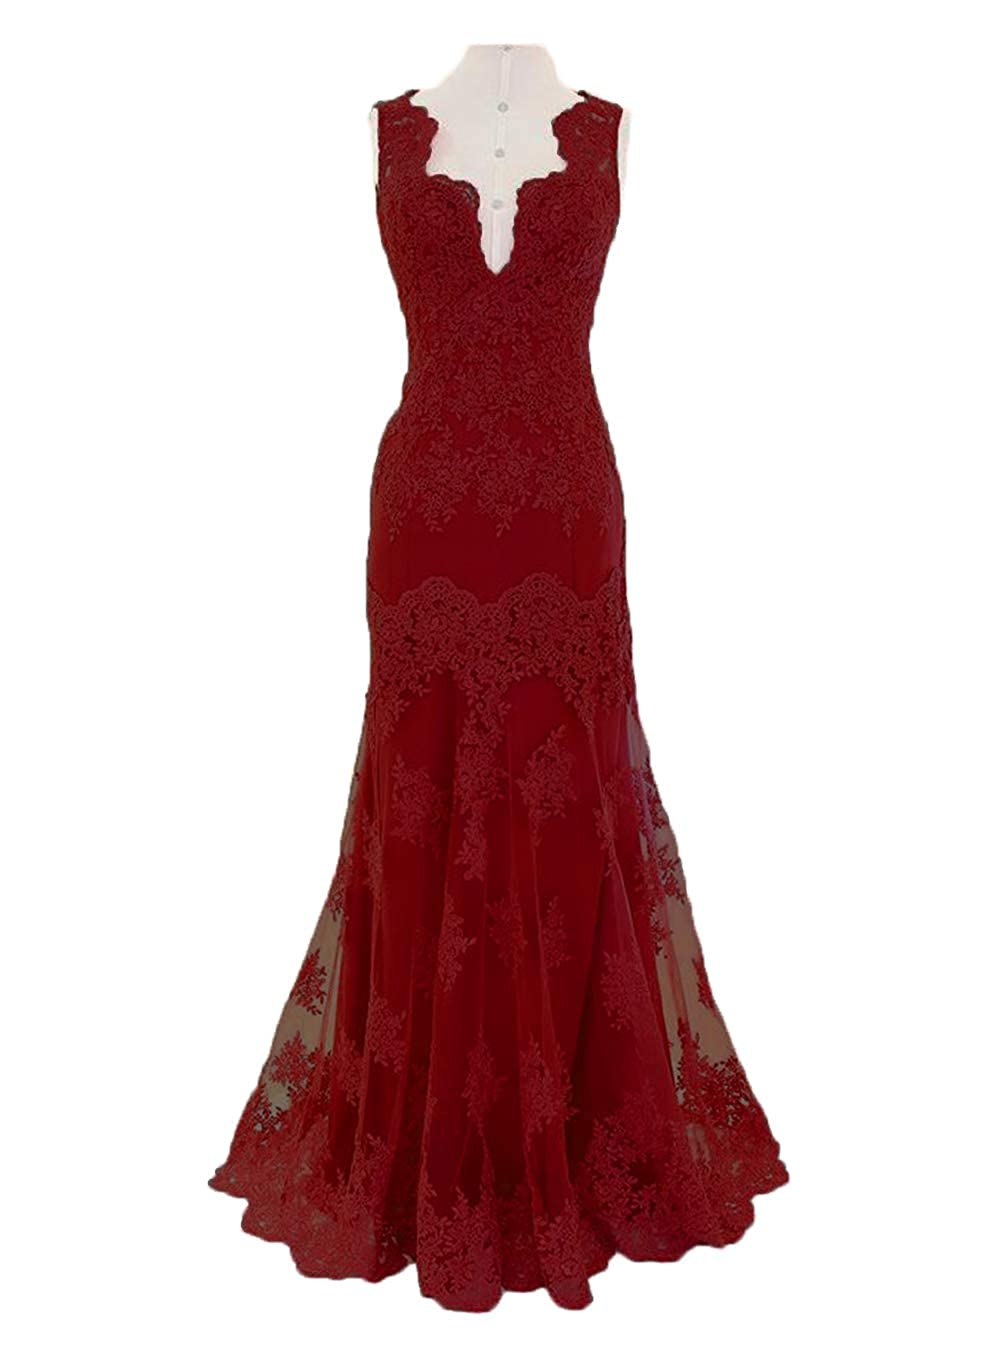 Burgundy alilith.Z Sexy V Neck Prom Dresses Mermaid 2019 Appliques Lace Long Formal Evening Dresses Party Gowns for Women